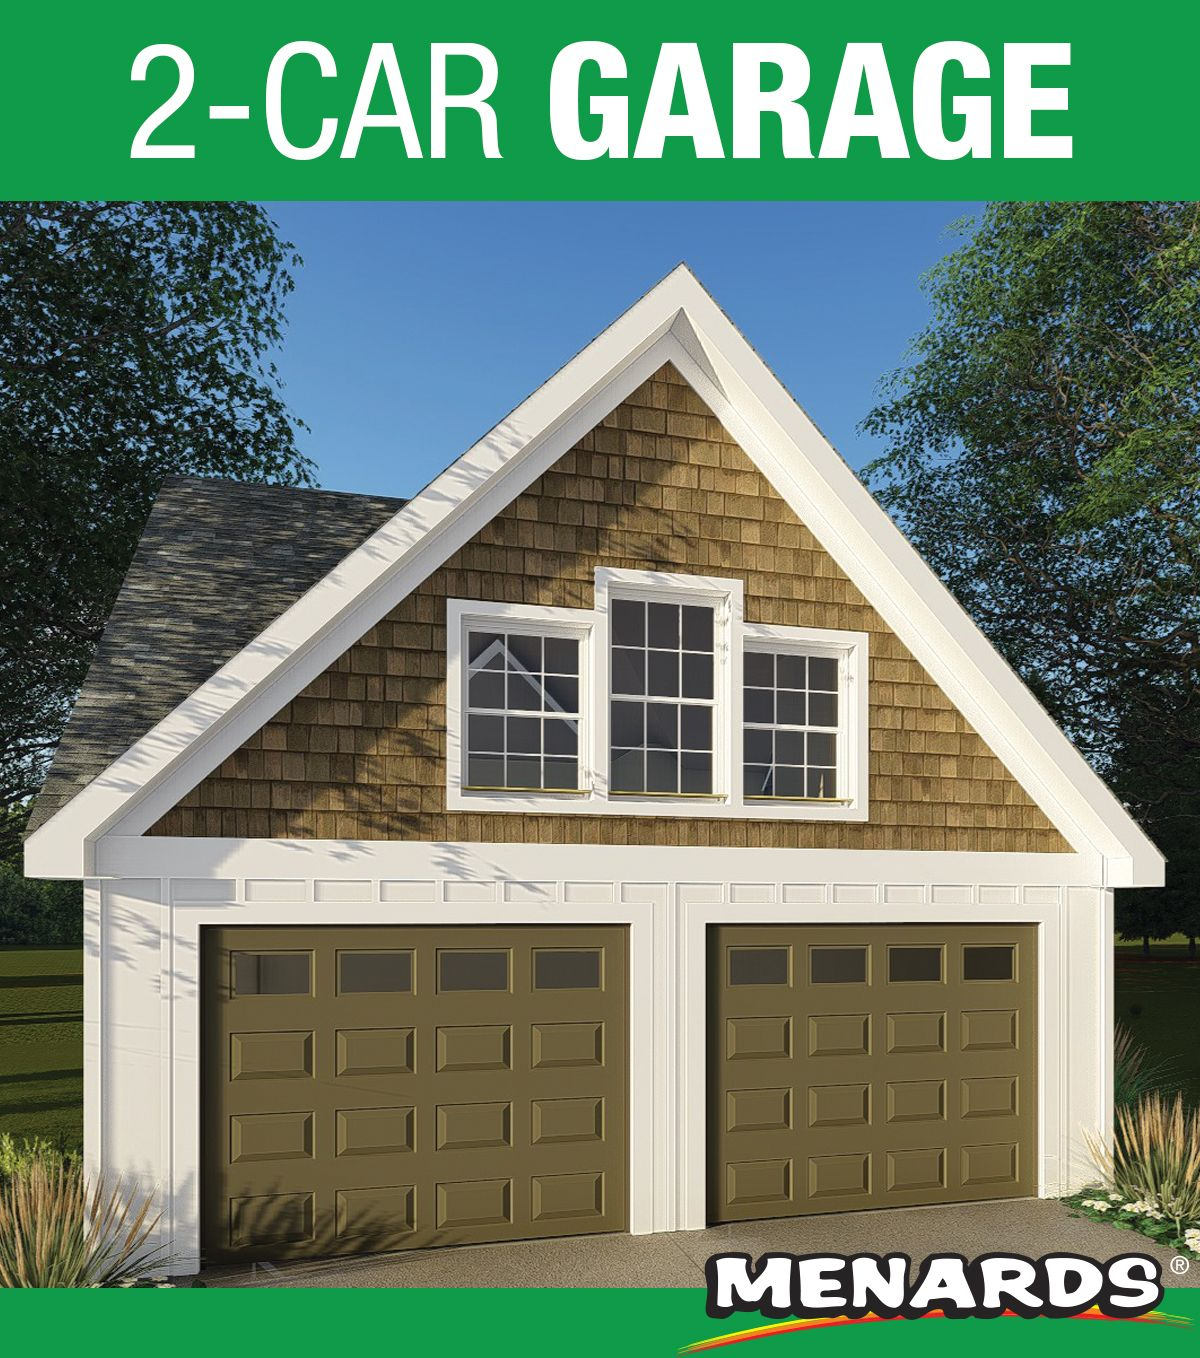 The 24 X 26 X 9 Two Car Garage With Dormer Features Two 9 X 7 Overhead Garage Doors With Openers Three Windows Craftsman Bungalows Entry Doors Car Garage